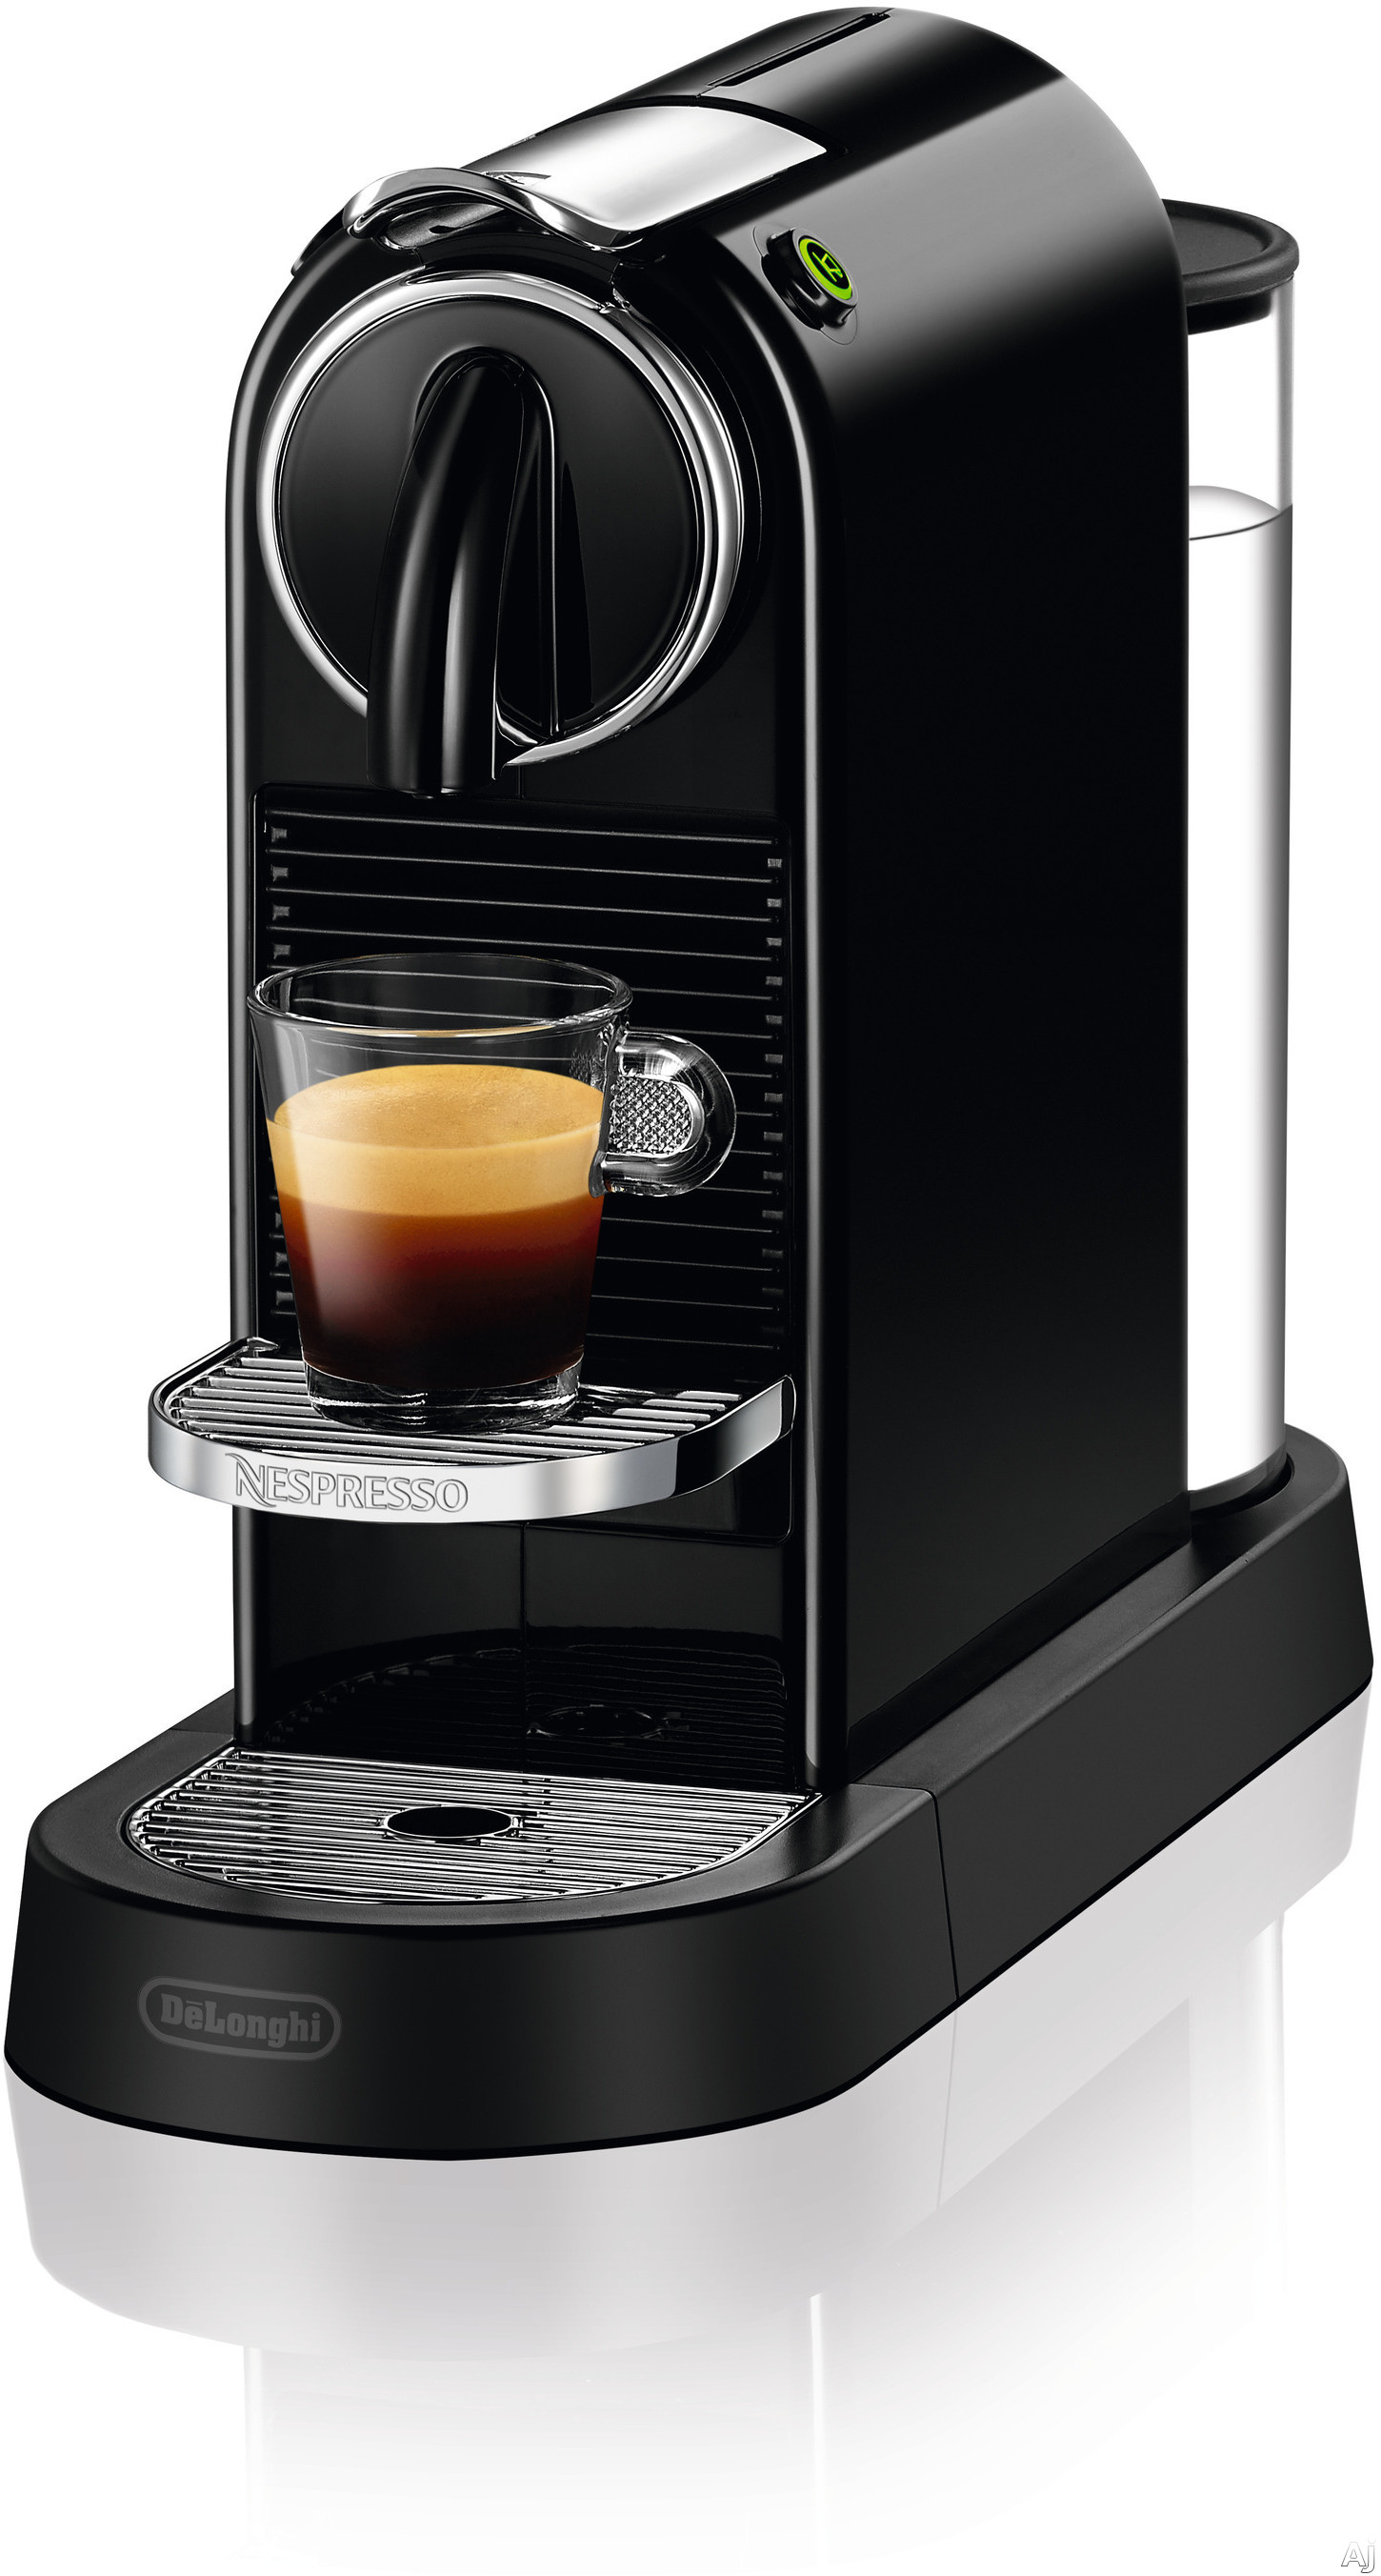 Nespresso Original Line EN167B CitiZ Espresso Machine with 2 One Touch Presets, Fast Preheat, Auto Power-off, 16 Nespresso Capsule Tasting Pack, Folding Cup Shelf, Auto Volume Control and High-Pressur